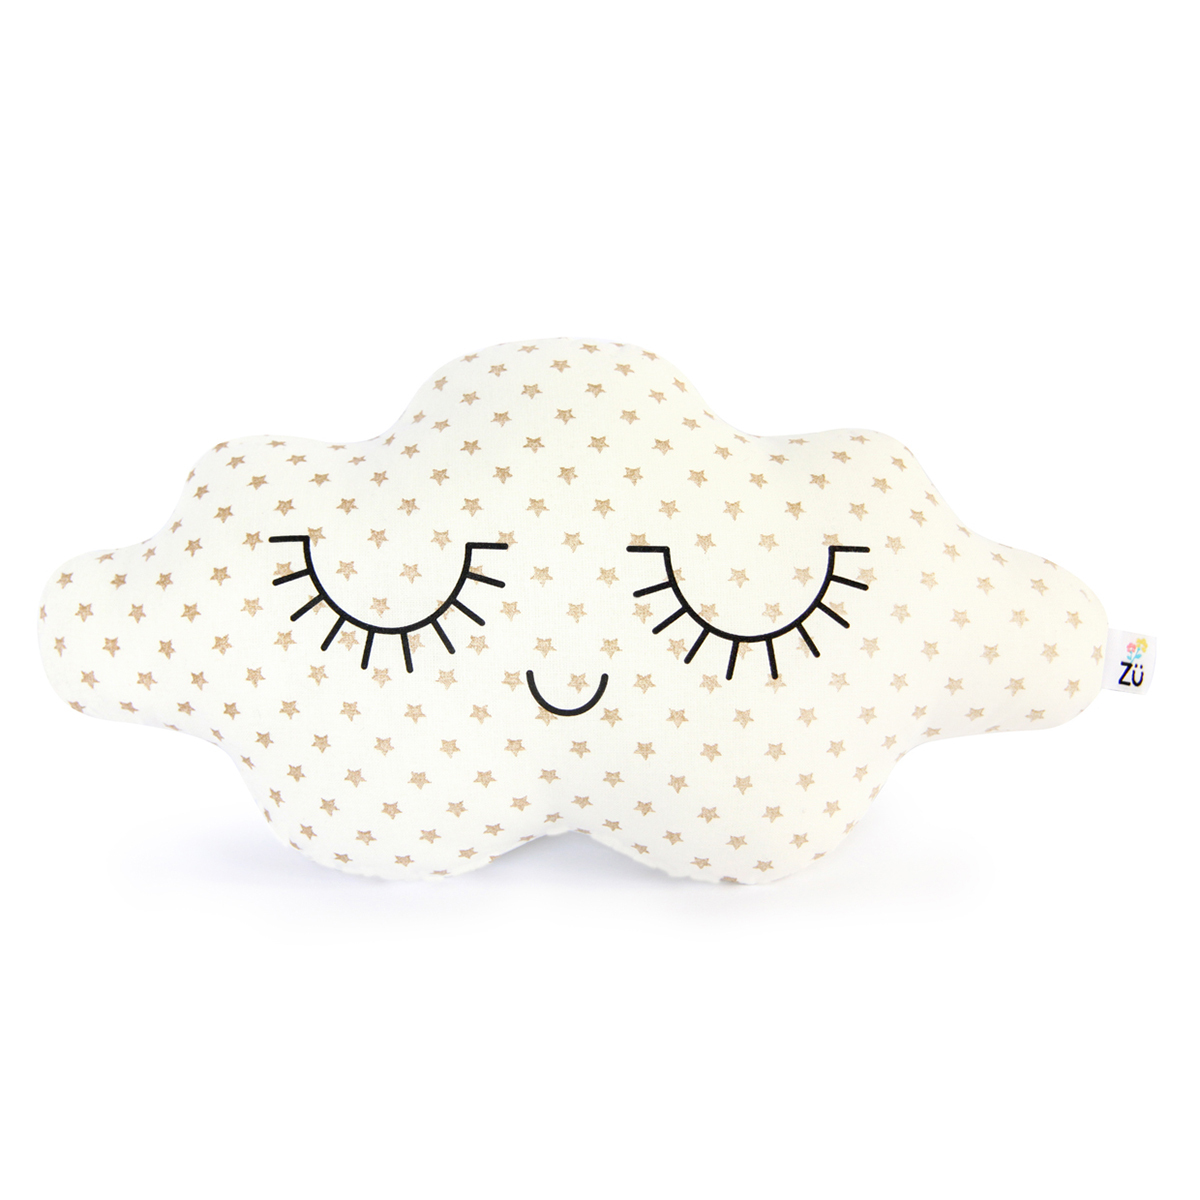 Coussin Coussin Nuage Etoiles Or Coussin Nuage Etoiles Or